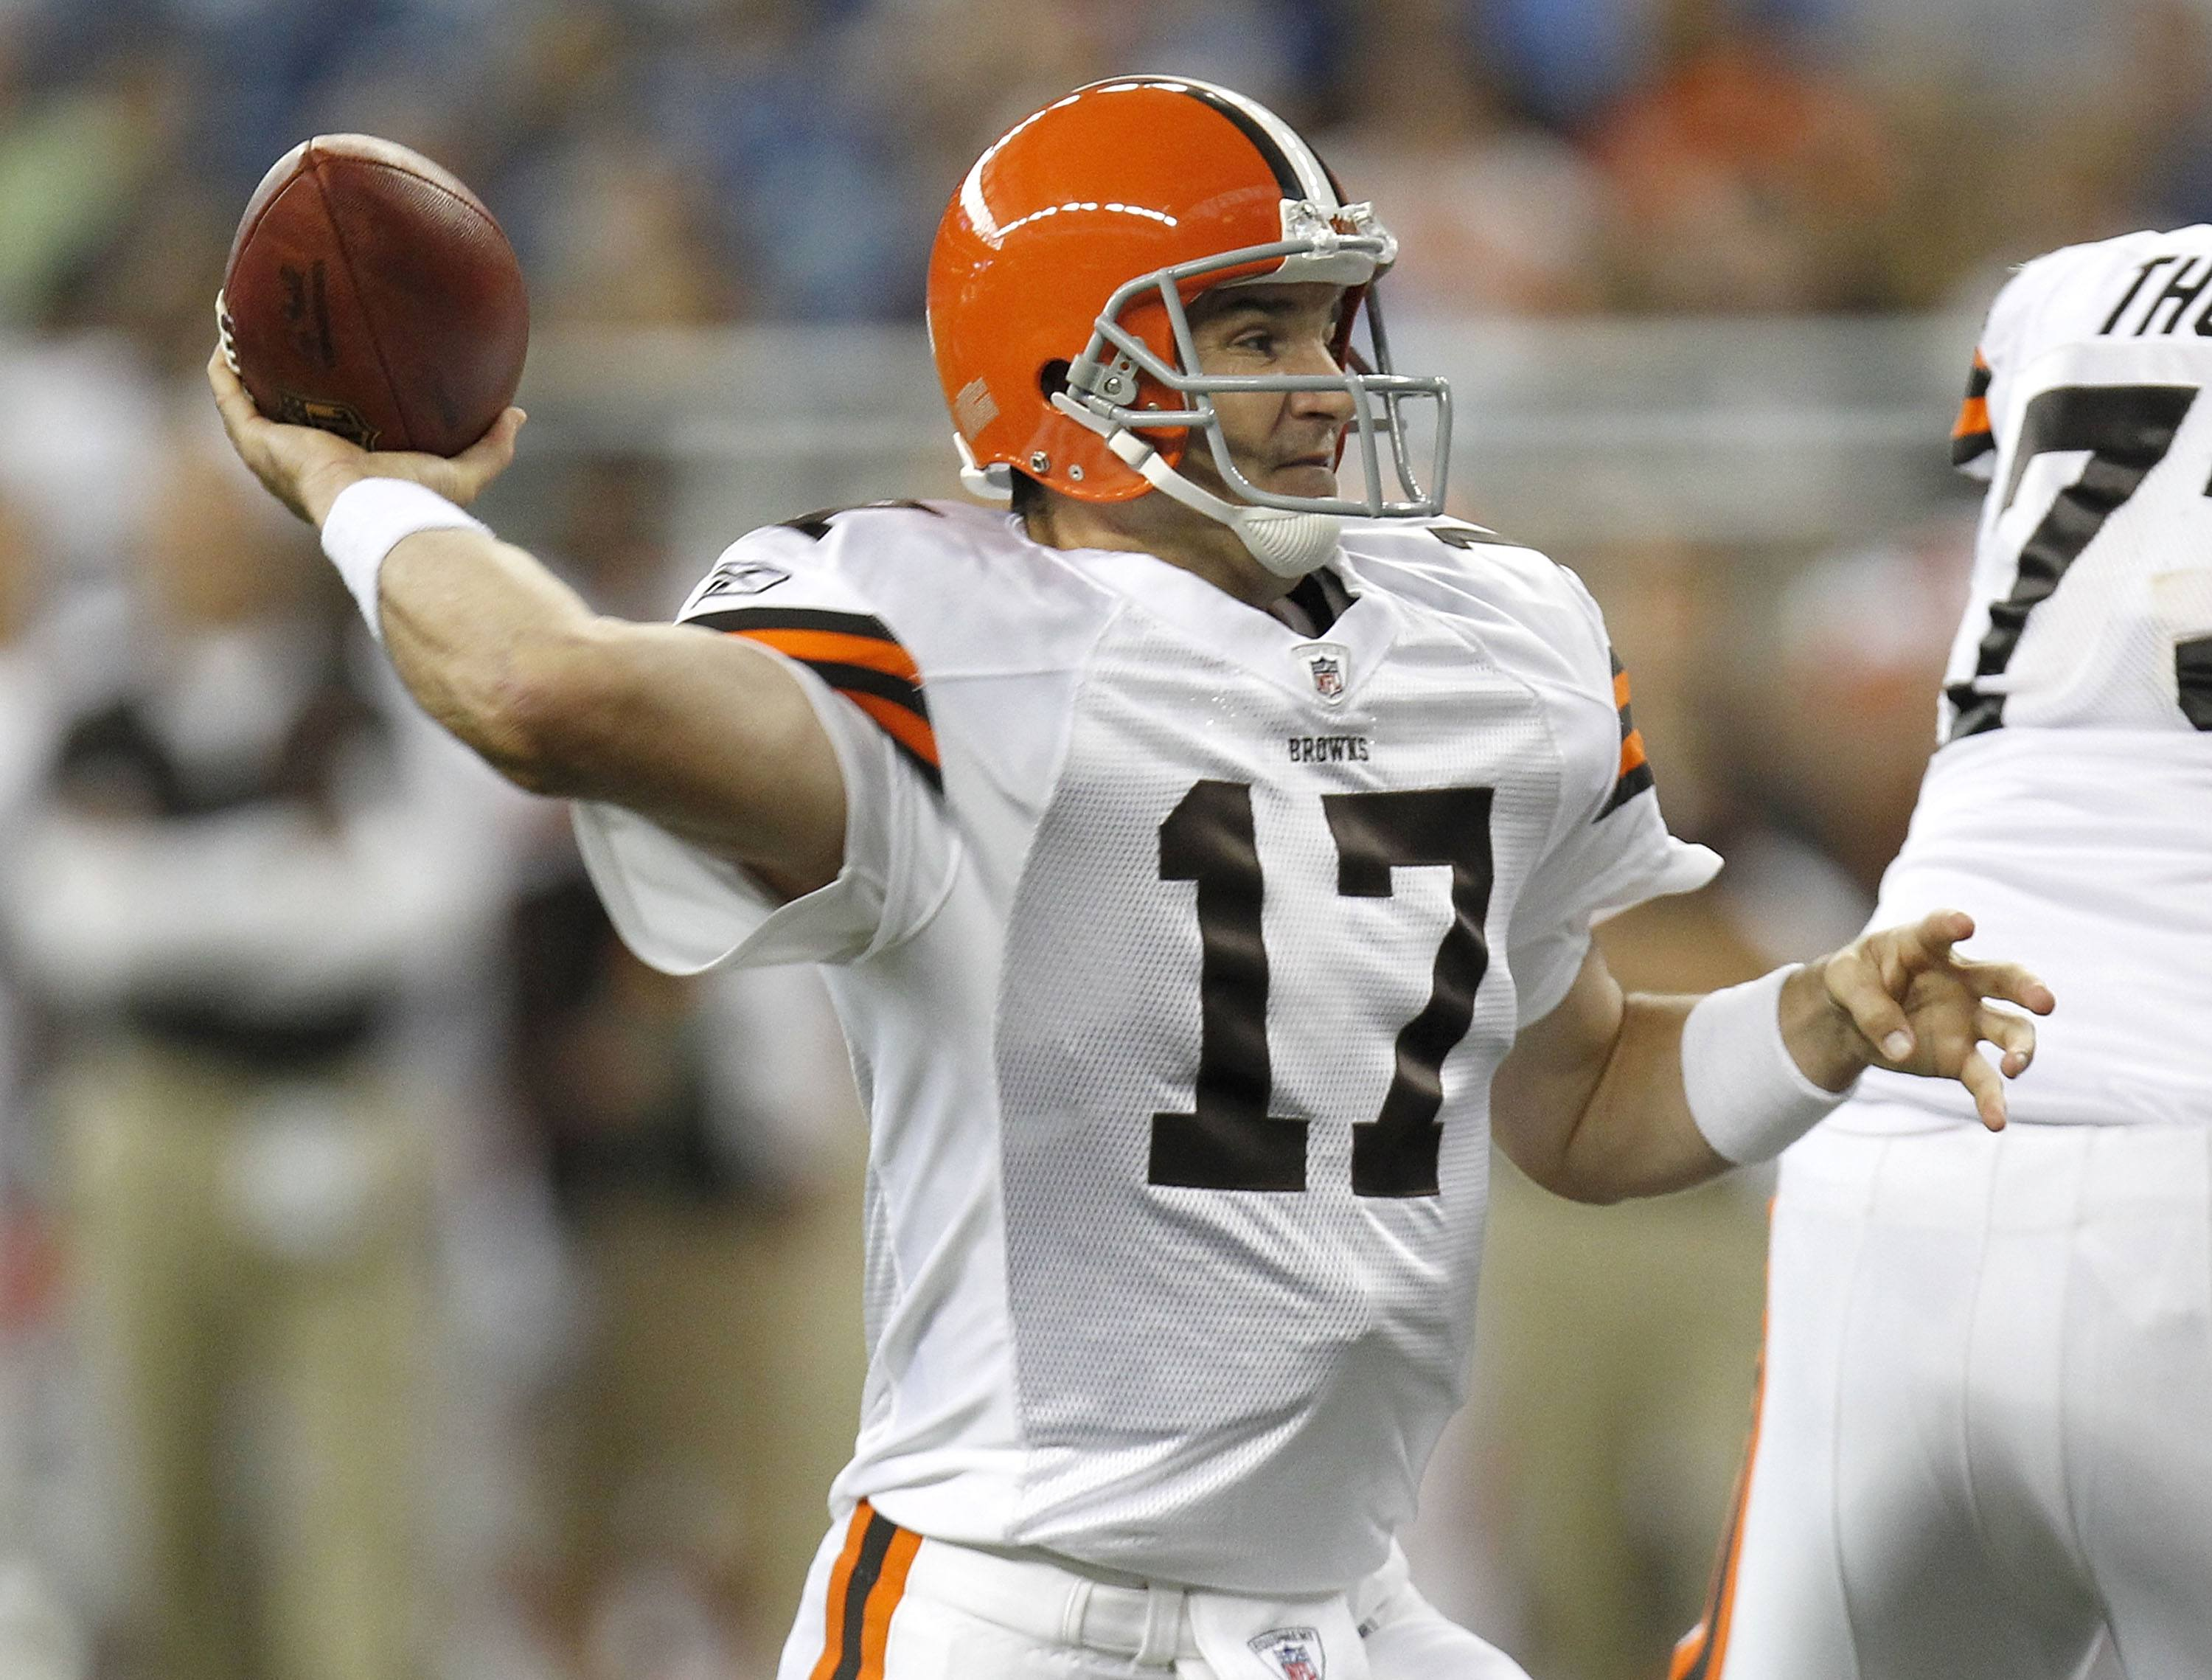 Jake Delhomme of the Cleveland Browns throws a first quarter pass.